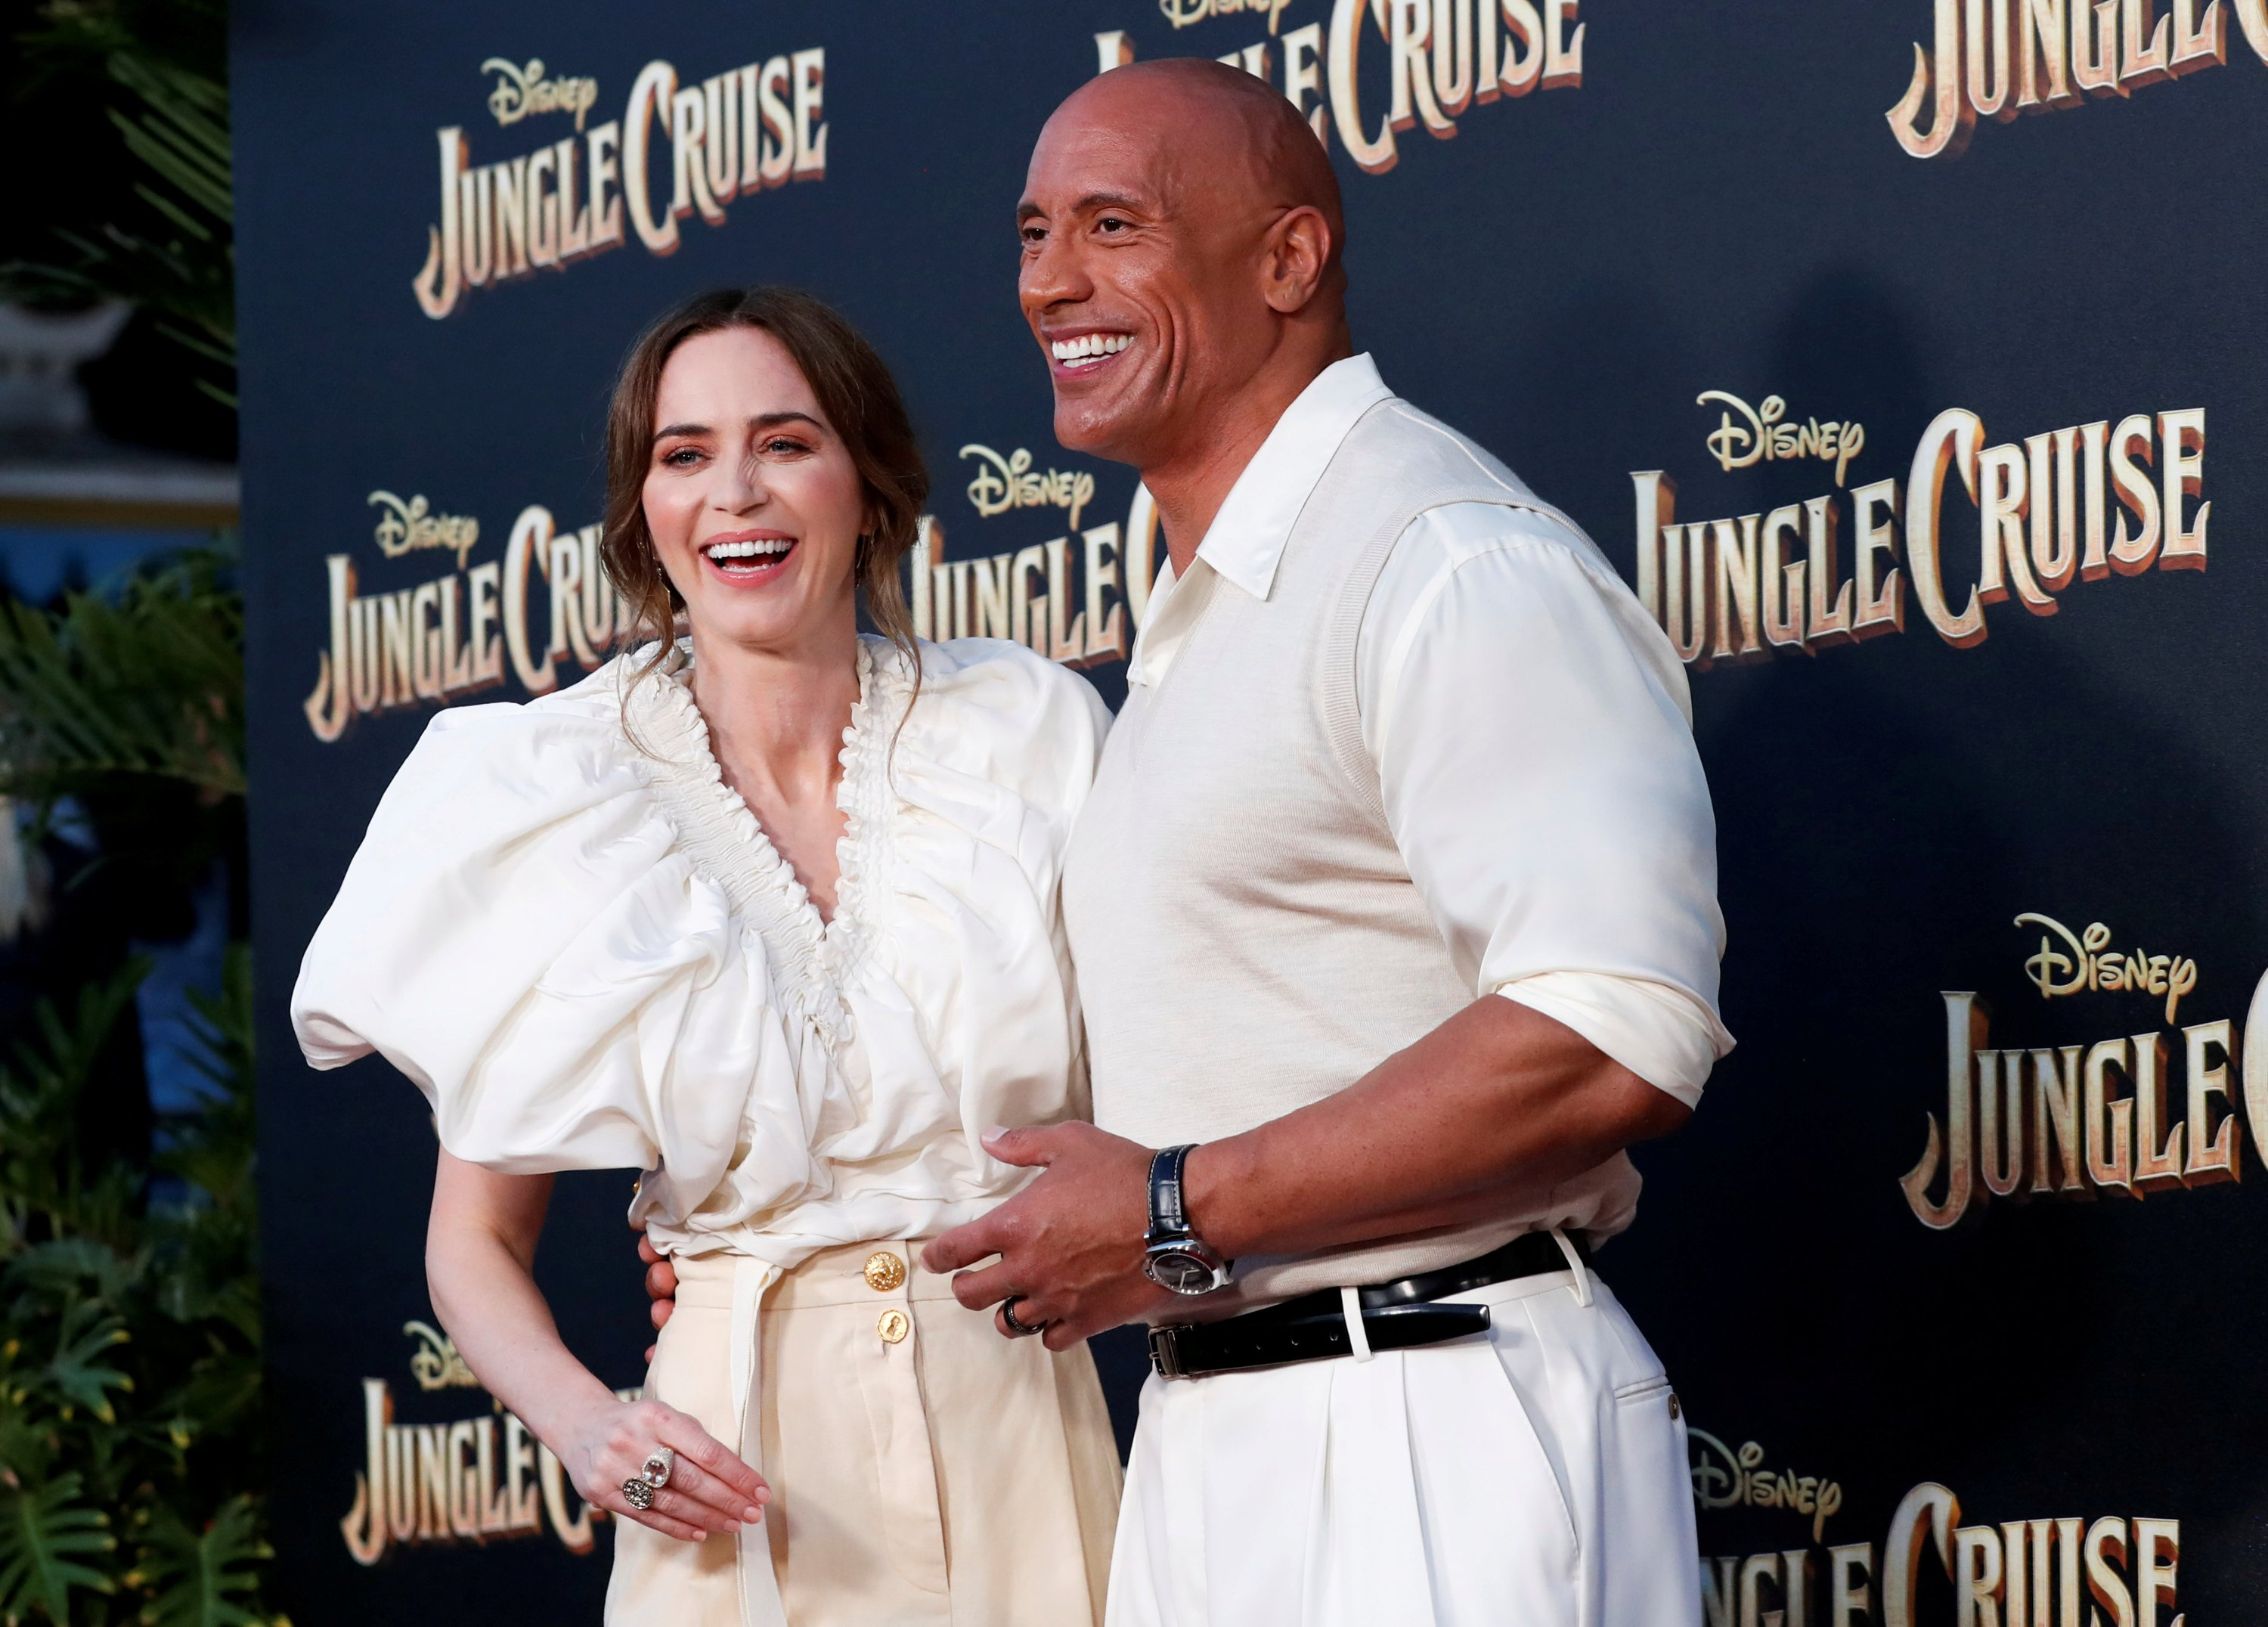 Cast members Dwayne Johnson and Emily Blunt attend the premiere of the film 'Jungle Cruise' at Disneyland Park in Anaheim, California, U.S., on July 24, 2021. (Reuters)